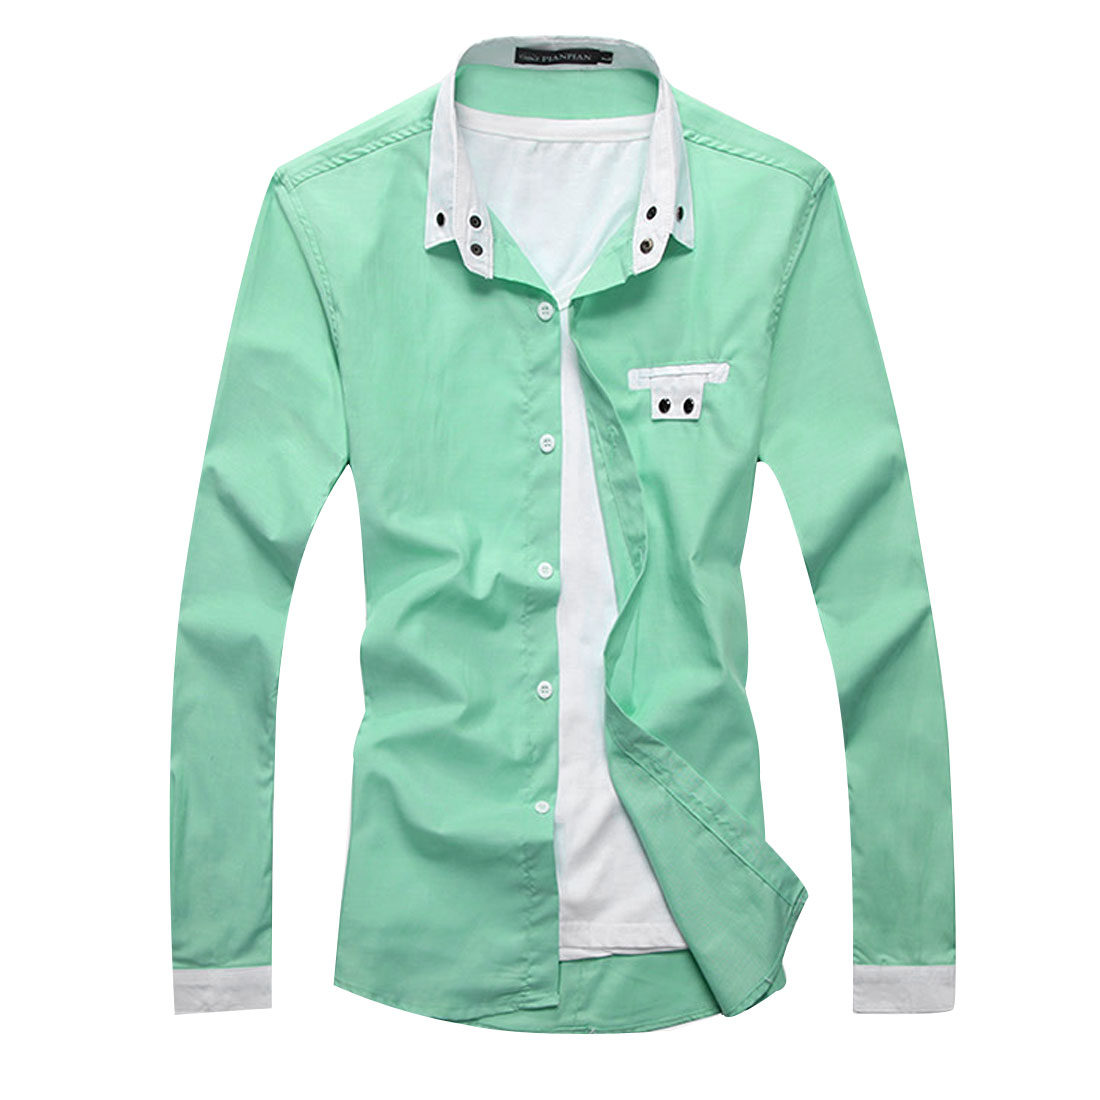 Stylish Solid Color Light Green Long SLeeve Snap Cuff Casual Shirt For Man S